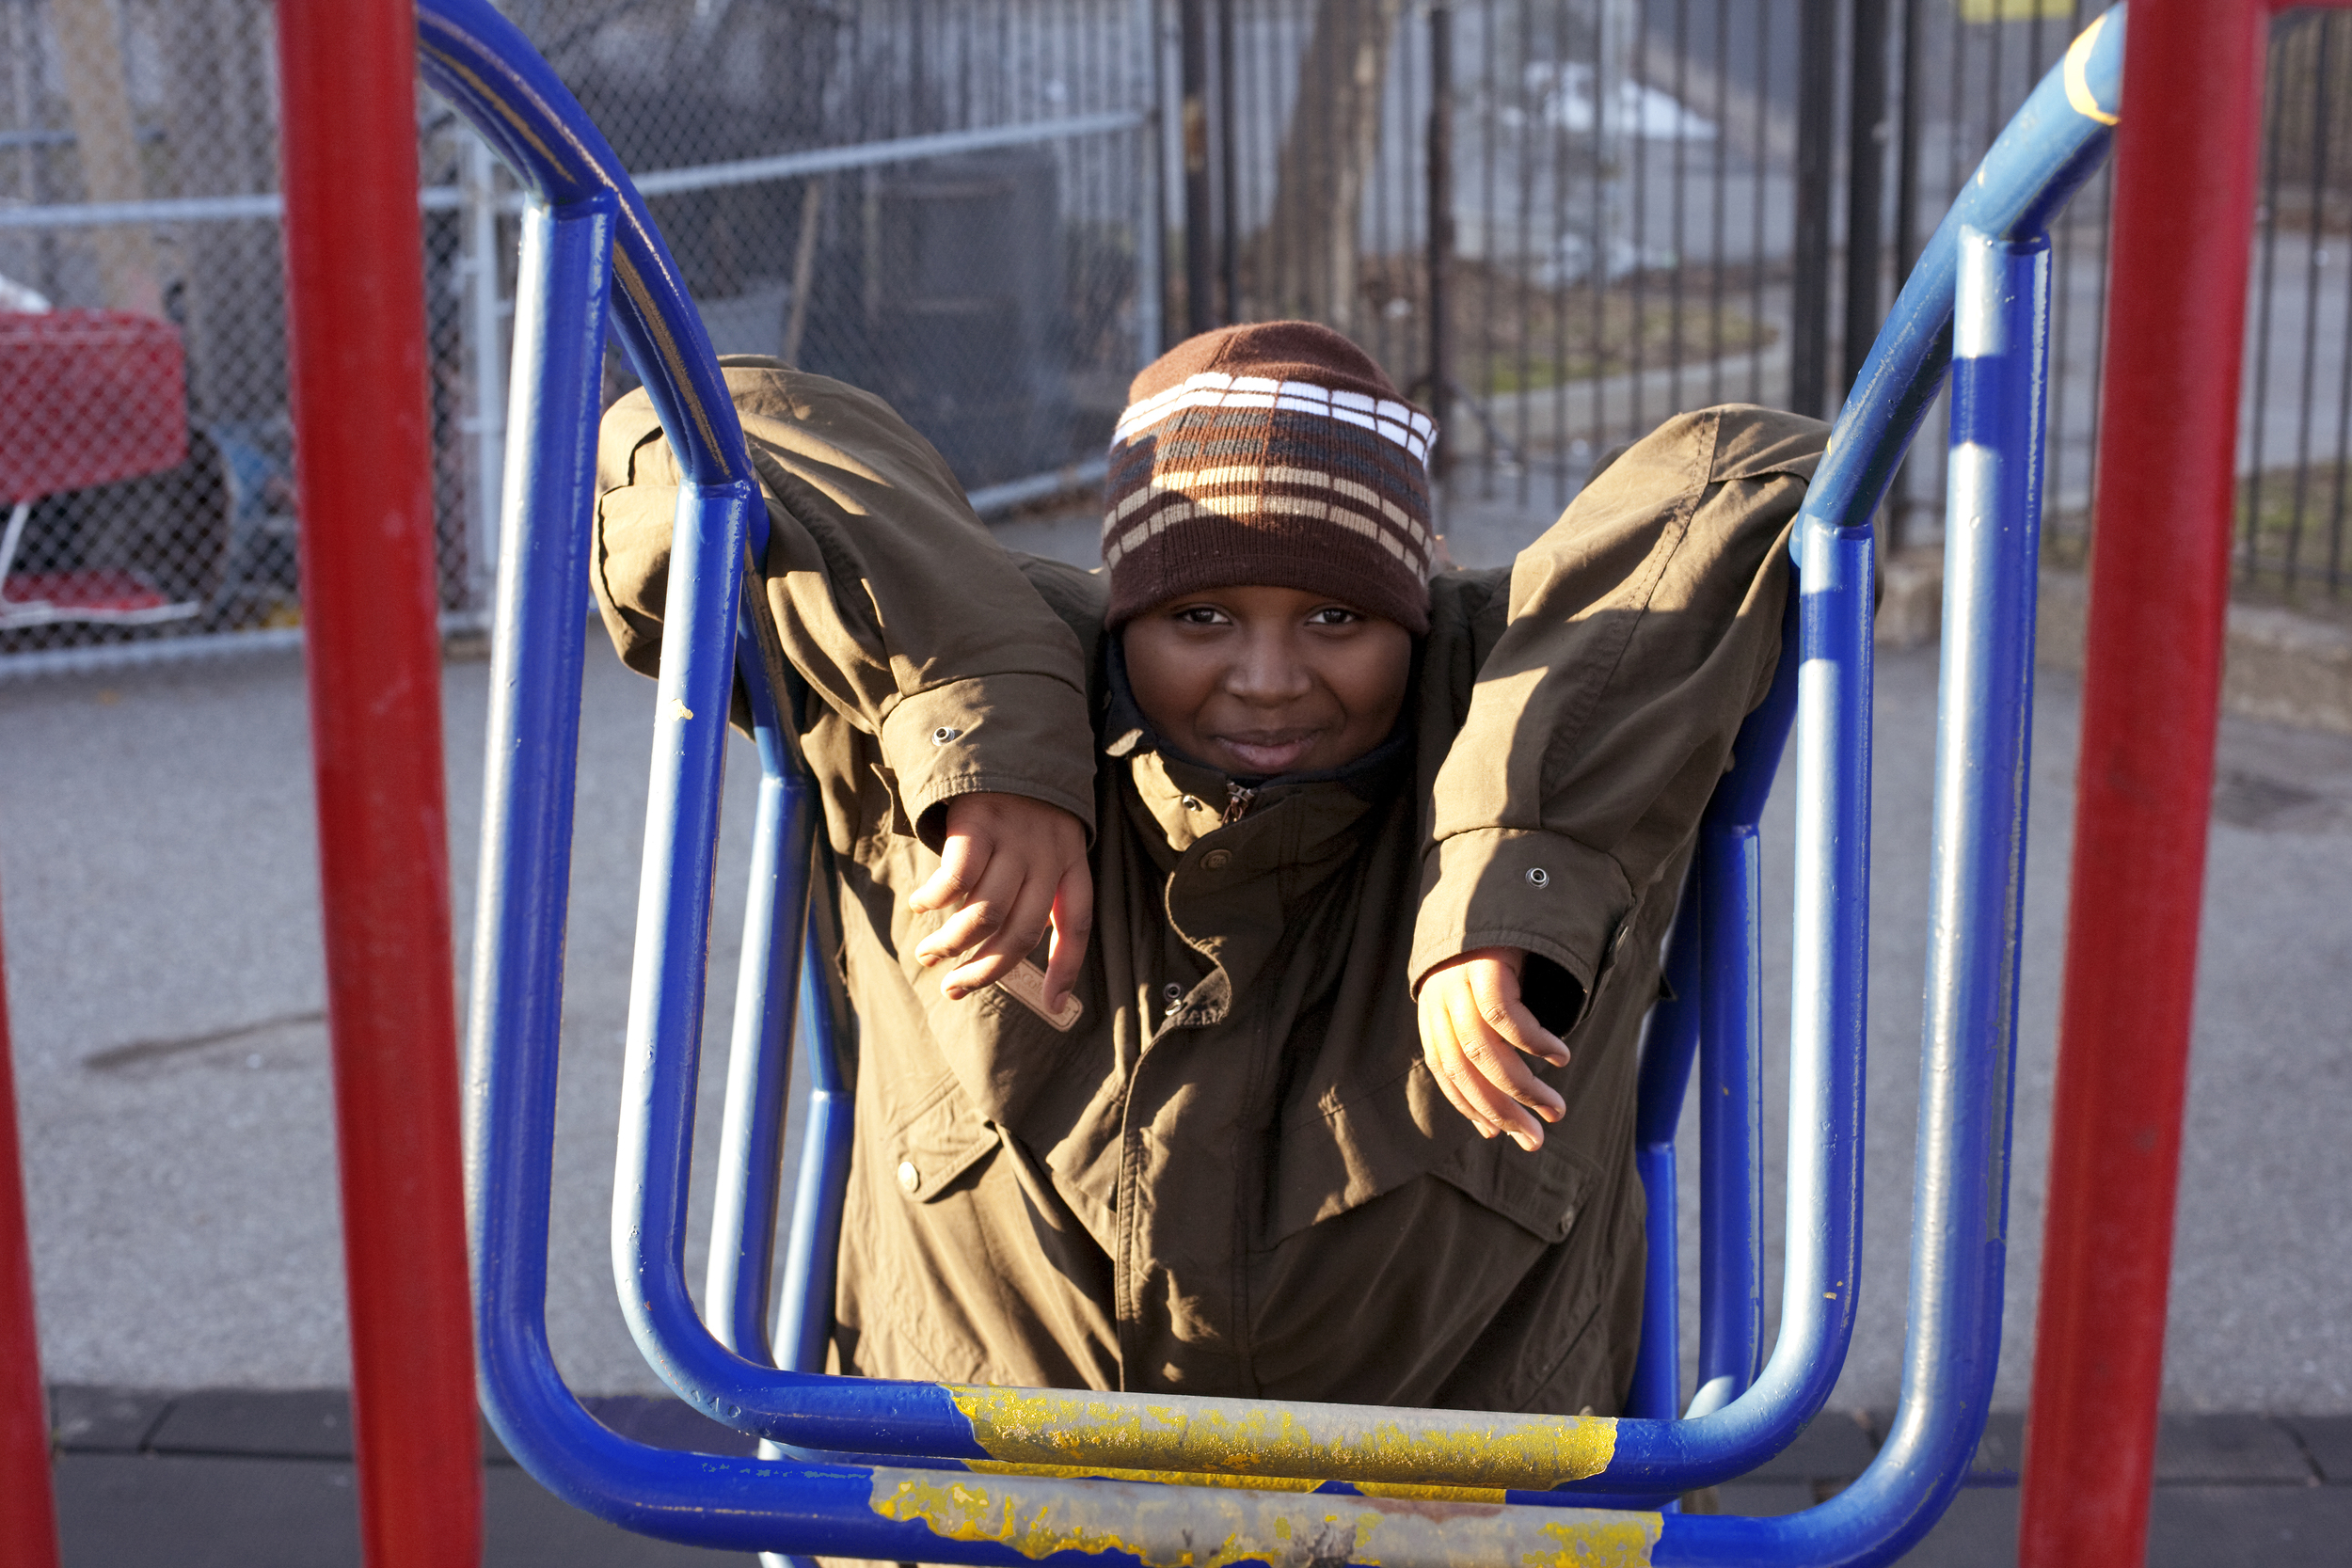 Abdoul at the playground.